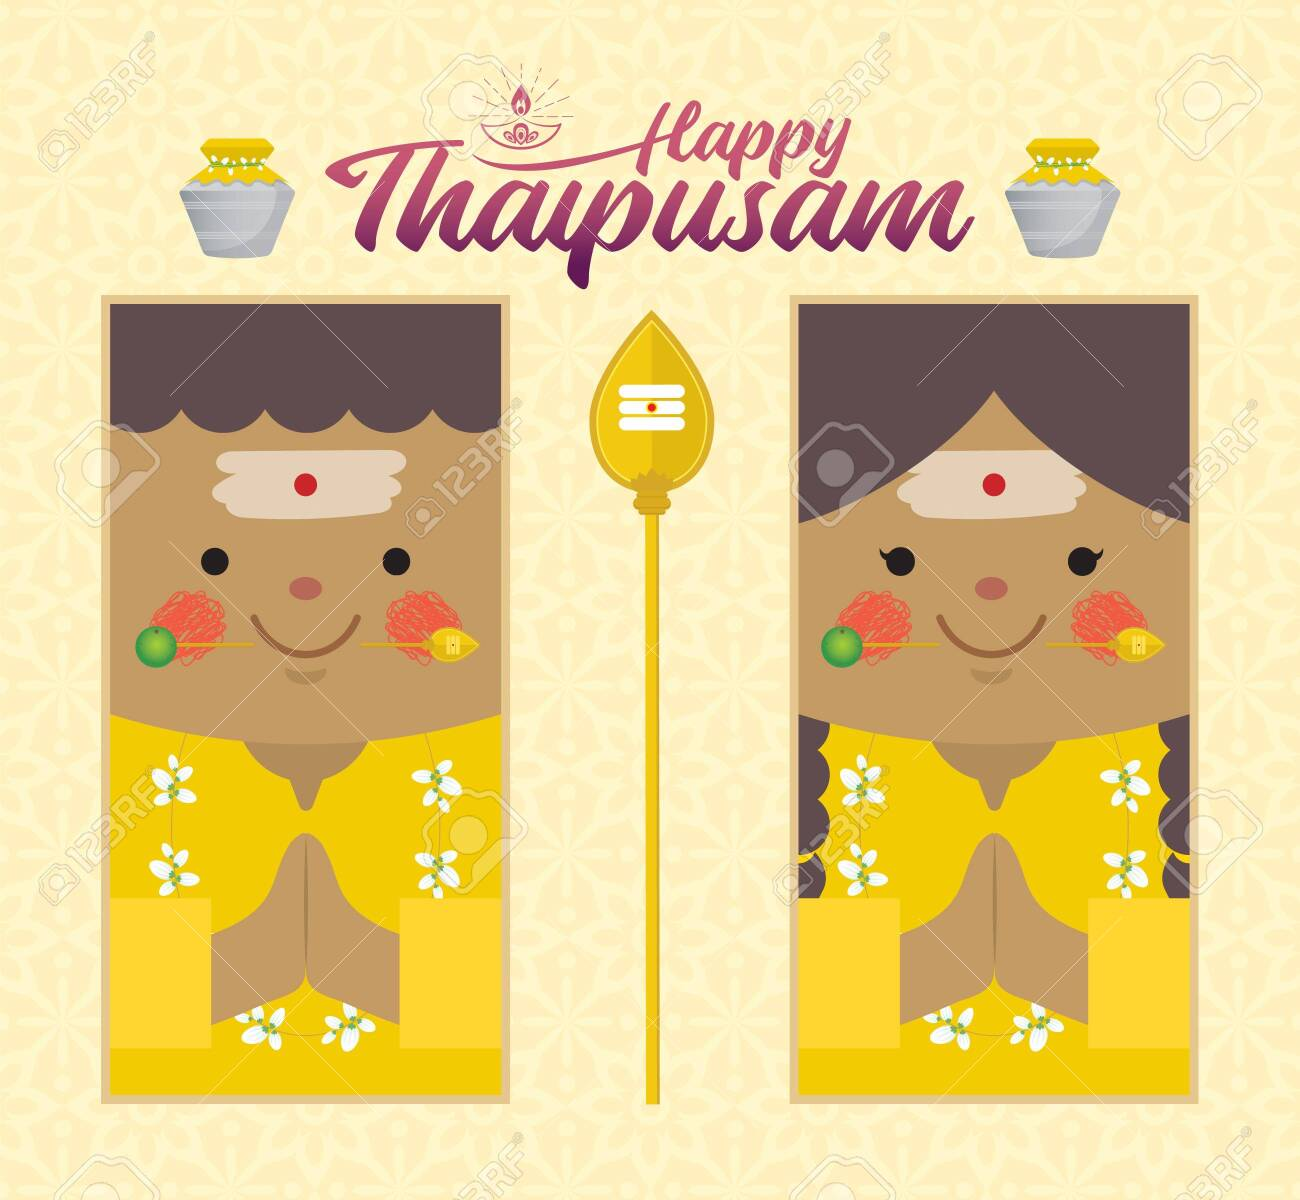 Thaipusam or Thaipoosam - a festival celebrated by the Tamil community. Cartoon Indian prayer with vel spear, paal kudam (milk pot) & diya (oil lamp) in flat design. Hinduism vector illustration. - 139265690